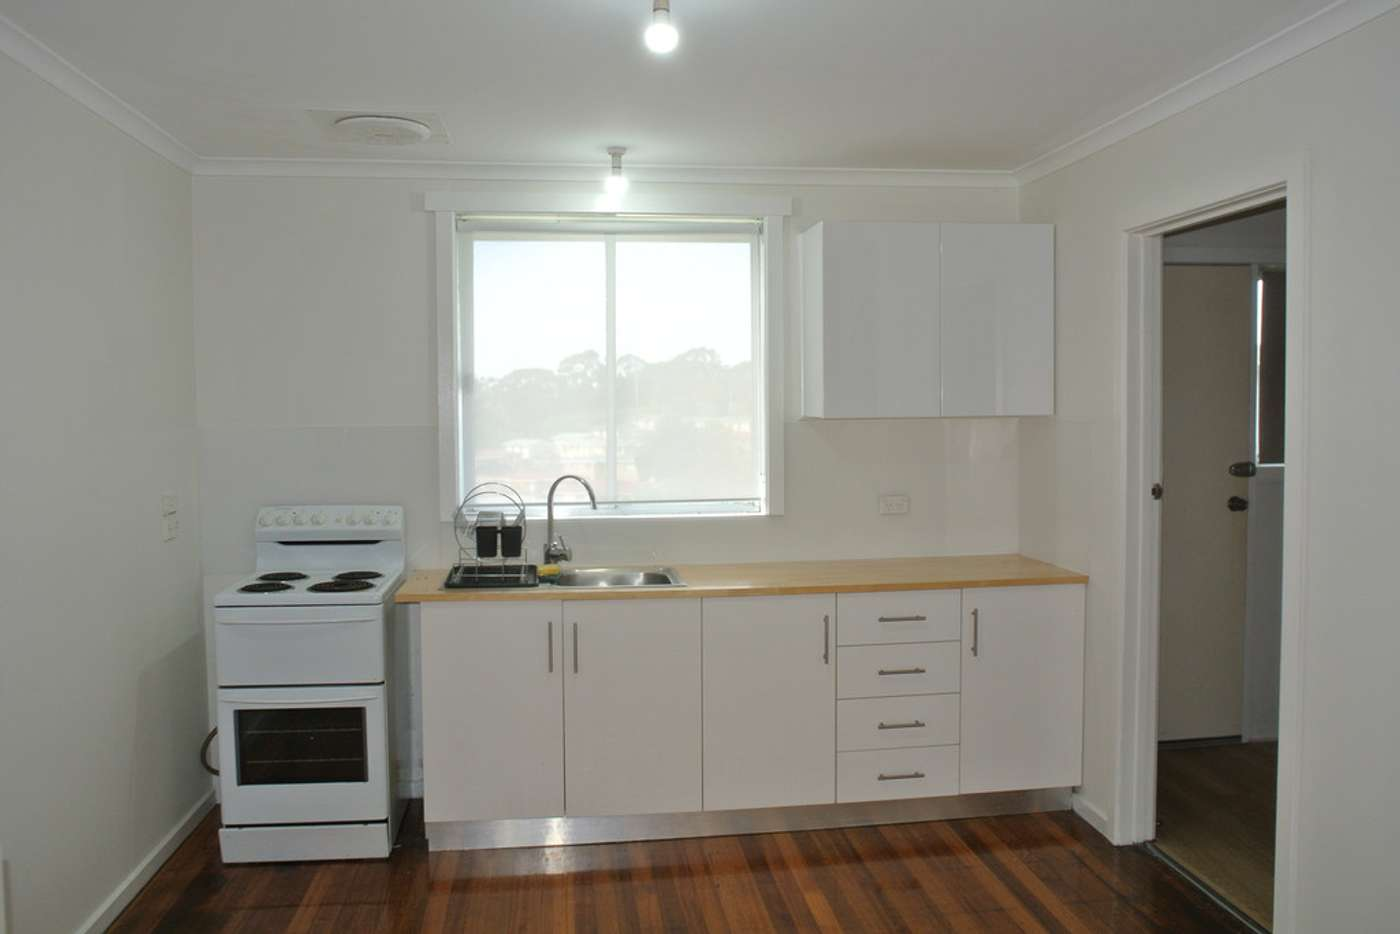 Main view of Homely house listing, 13 Wright Street, Shorewell Park TAS 7320